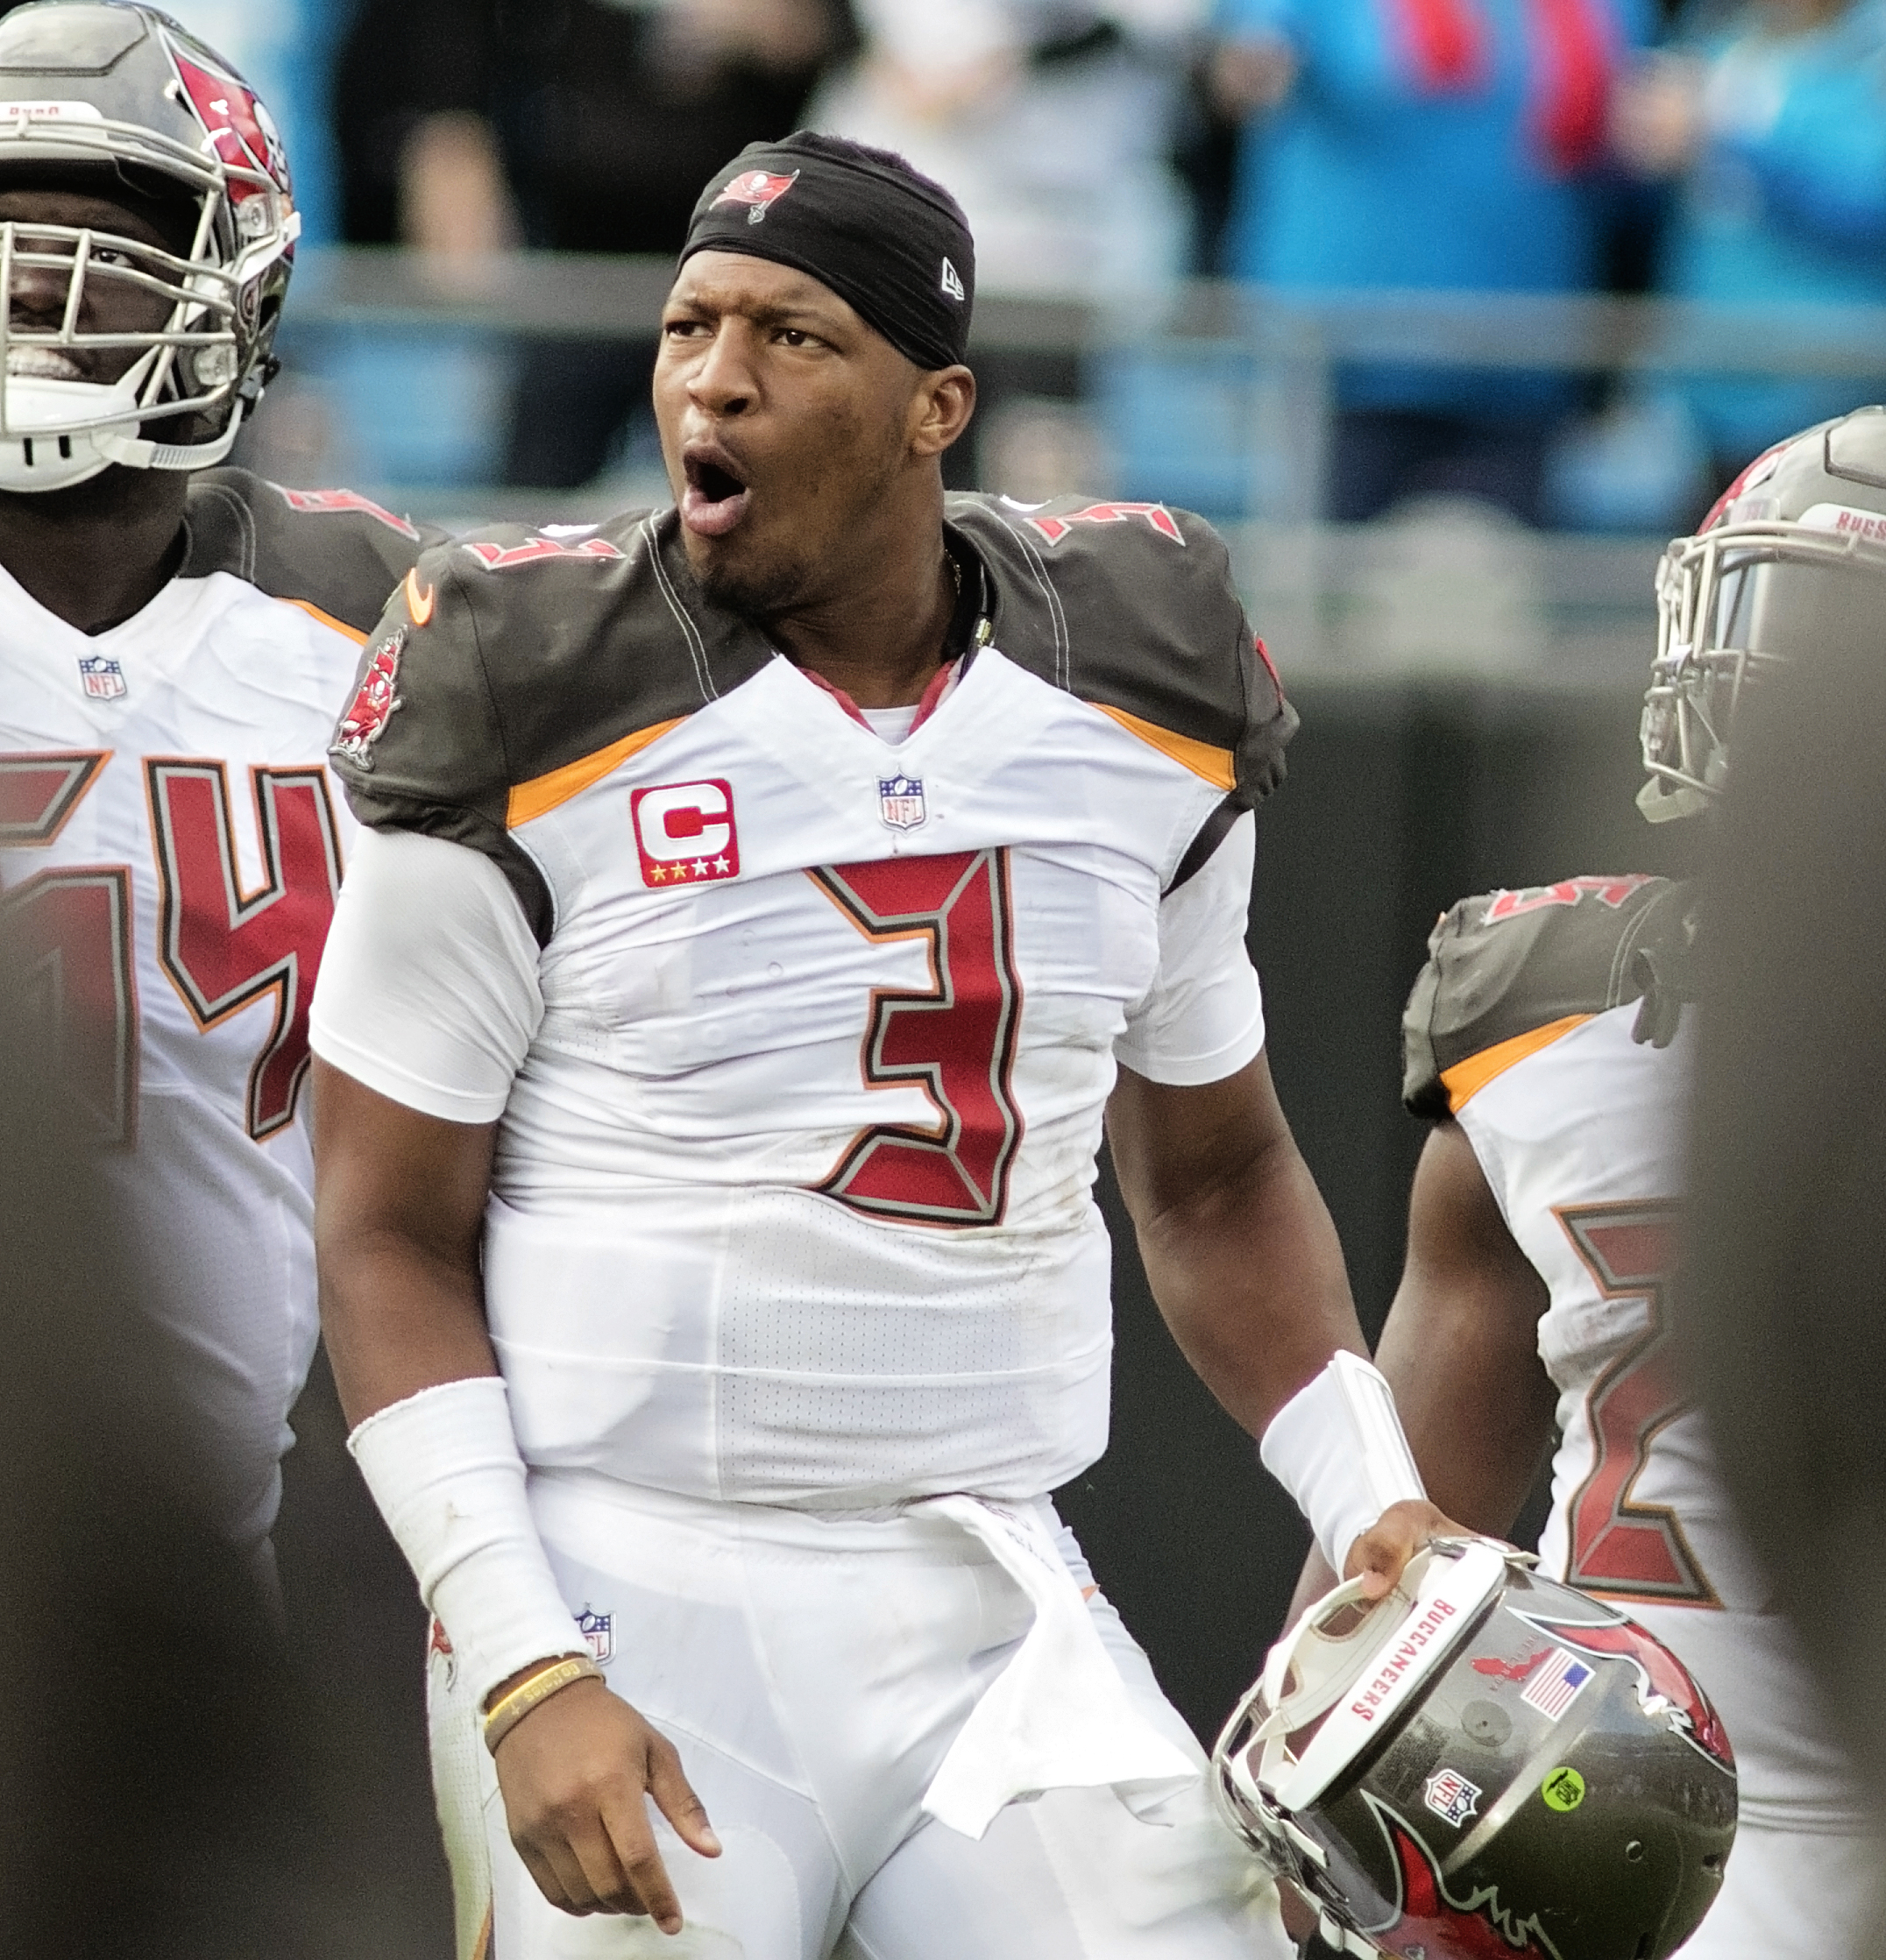 Winston insists he recovered his third fumble./CARMEN MANDATO